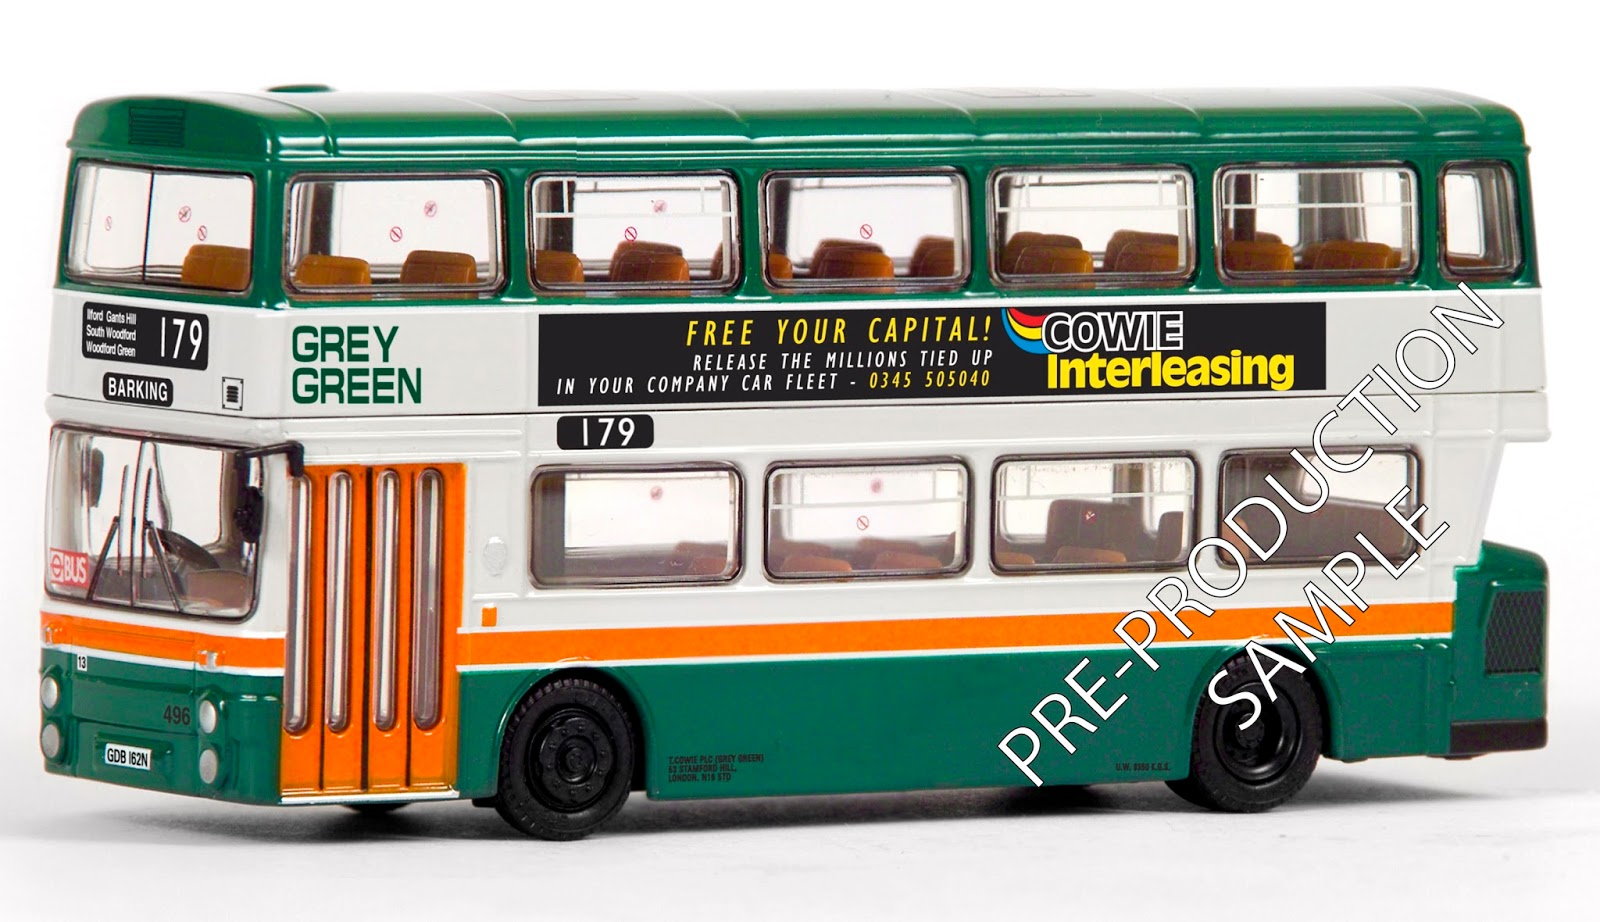 EFE PRE-PRO SAMPLE 29012 - GM Standard Fleetline - Grey Green Registration number GDB 162N, fleet number 496. Works route 179 to Barking. Scheduled for a February release